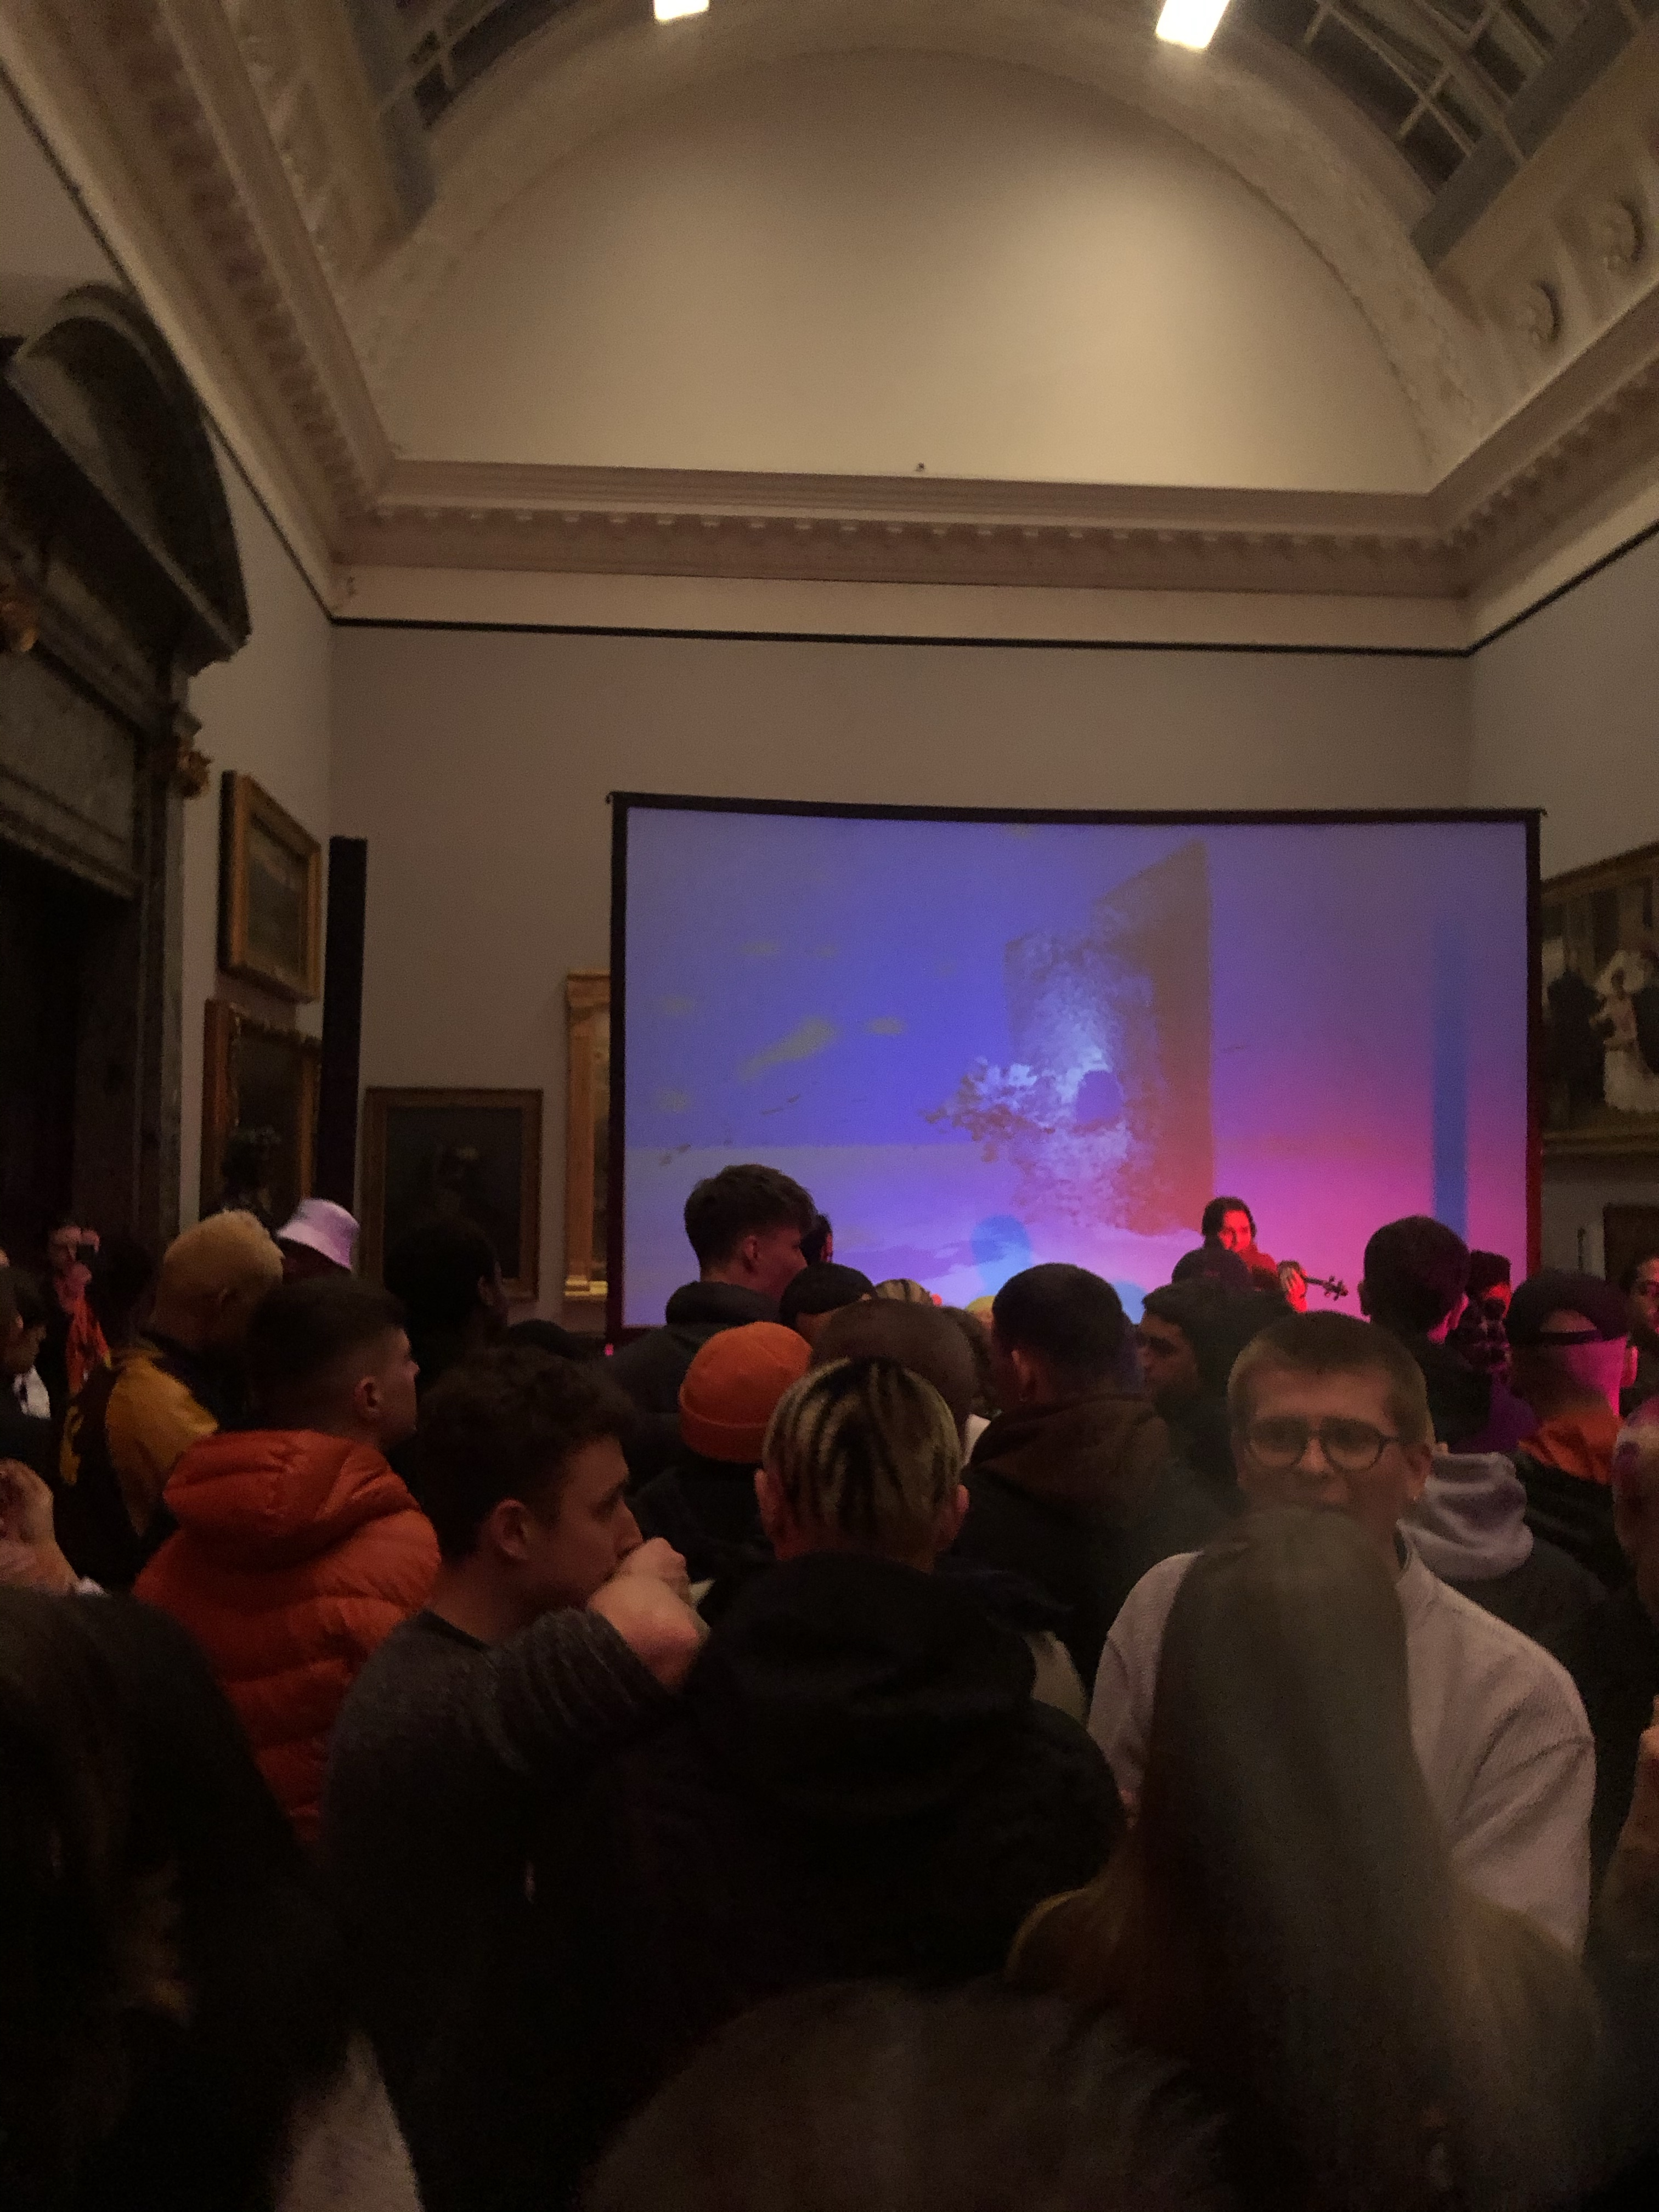 A room in the Tate Britain with pink and blue lights. The room is full of young people